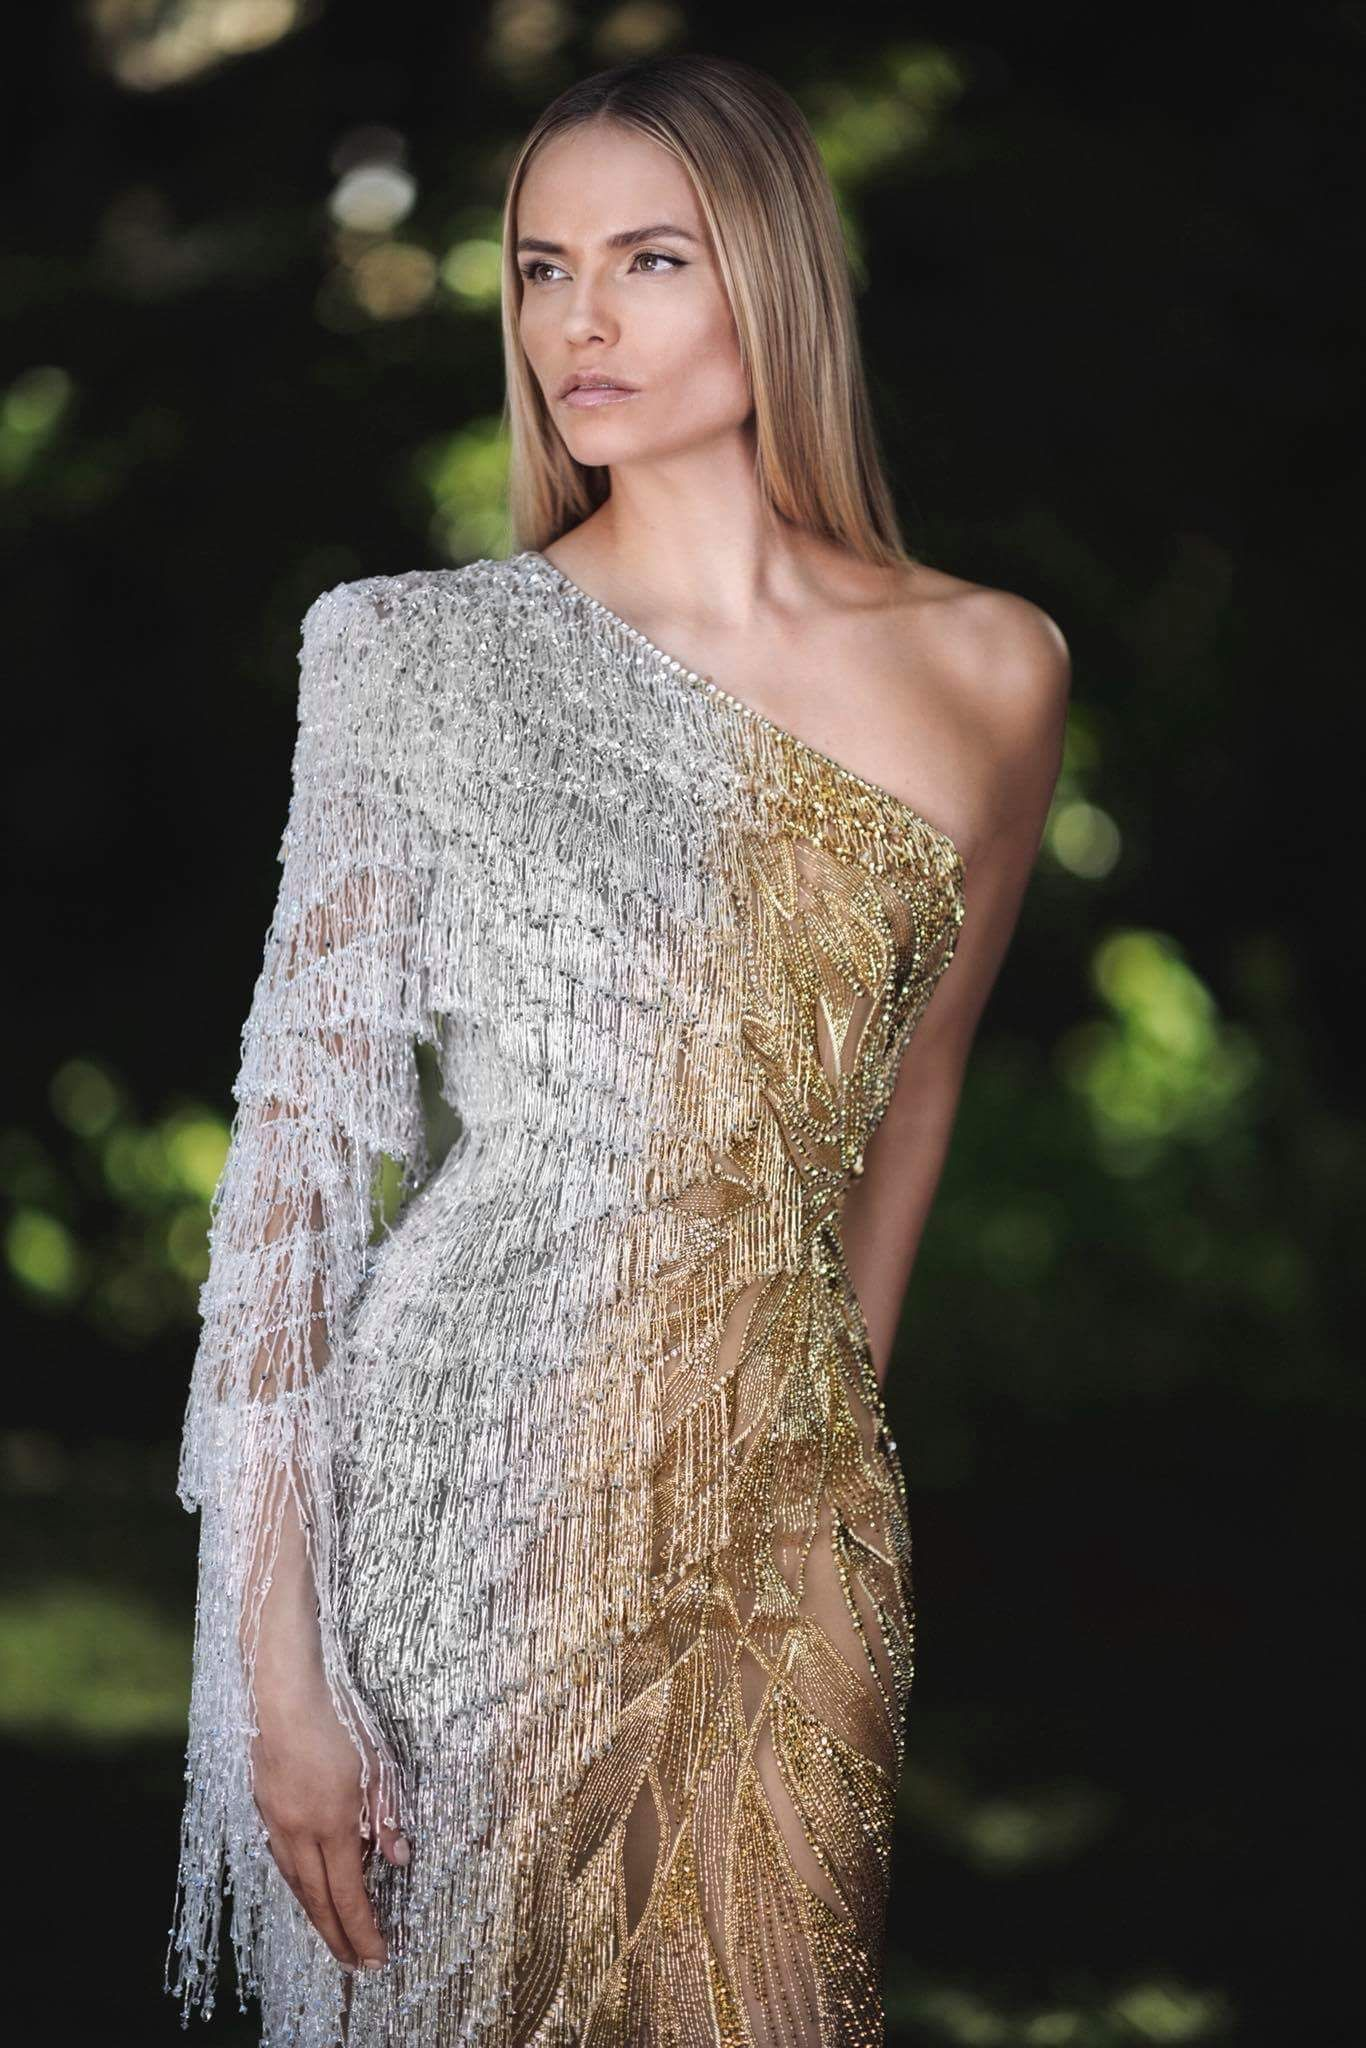 b29d436268f9 ATELIER VERSACE Fall Winter 2018 Haute Couture Look  8 Up Close Detail    Cascade Embellished Gown featuring NATASHA POLY